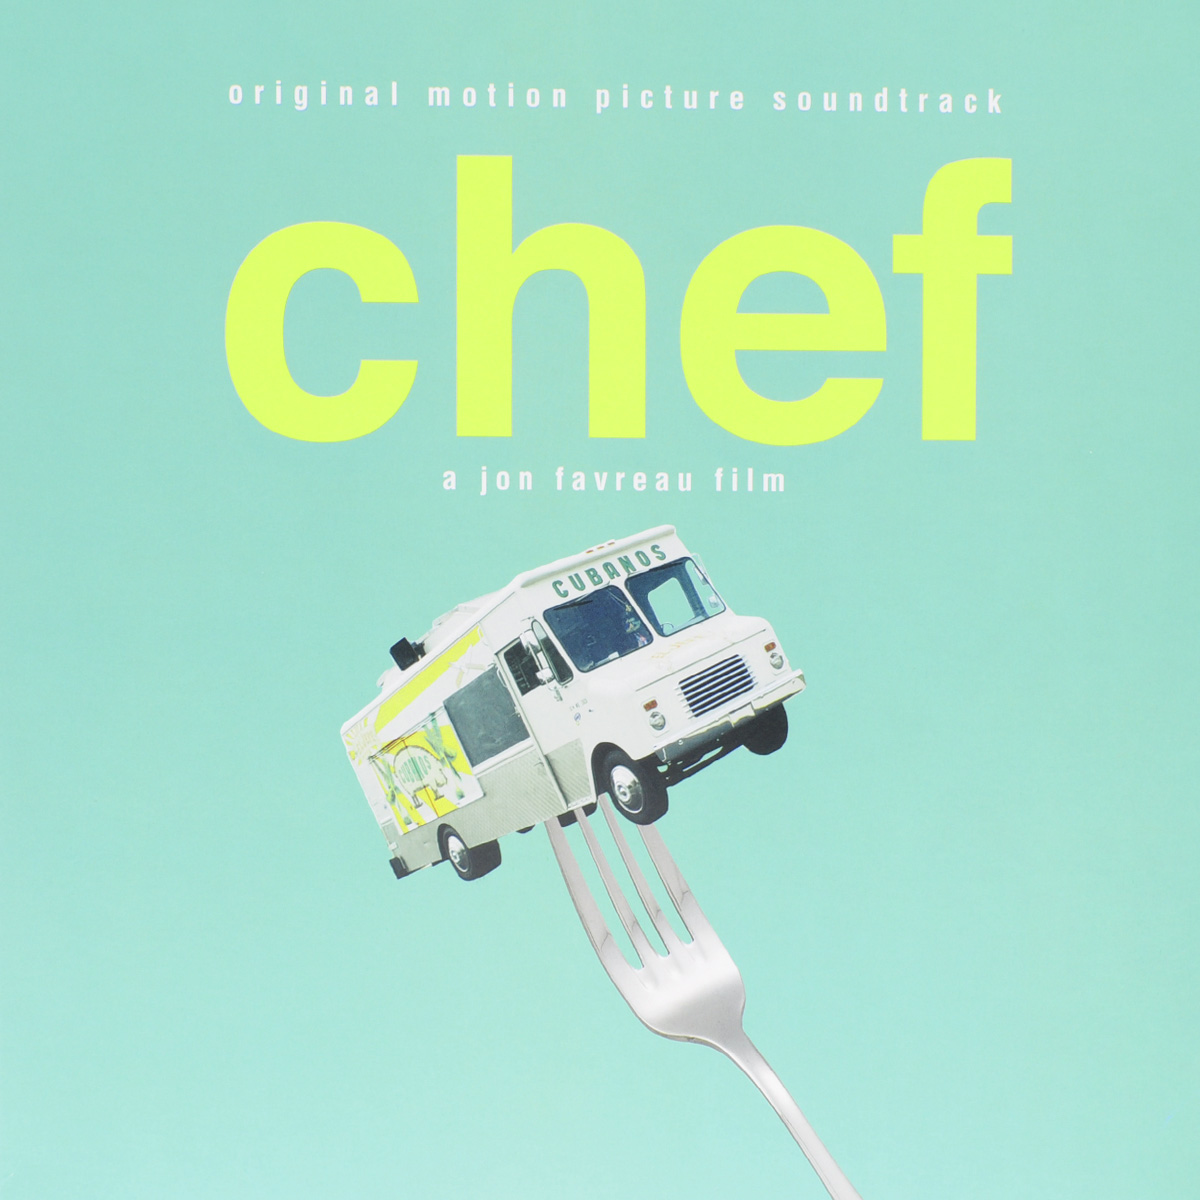 Chef. Original Motion Picture Soundtrack (LP) spectre original motion picture soundtrack original music by thomas newman lp